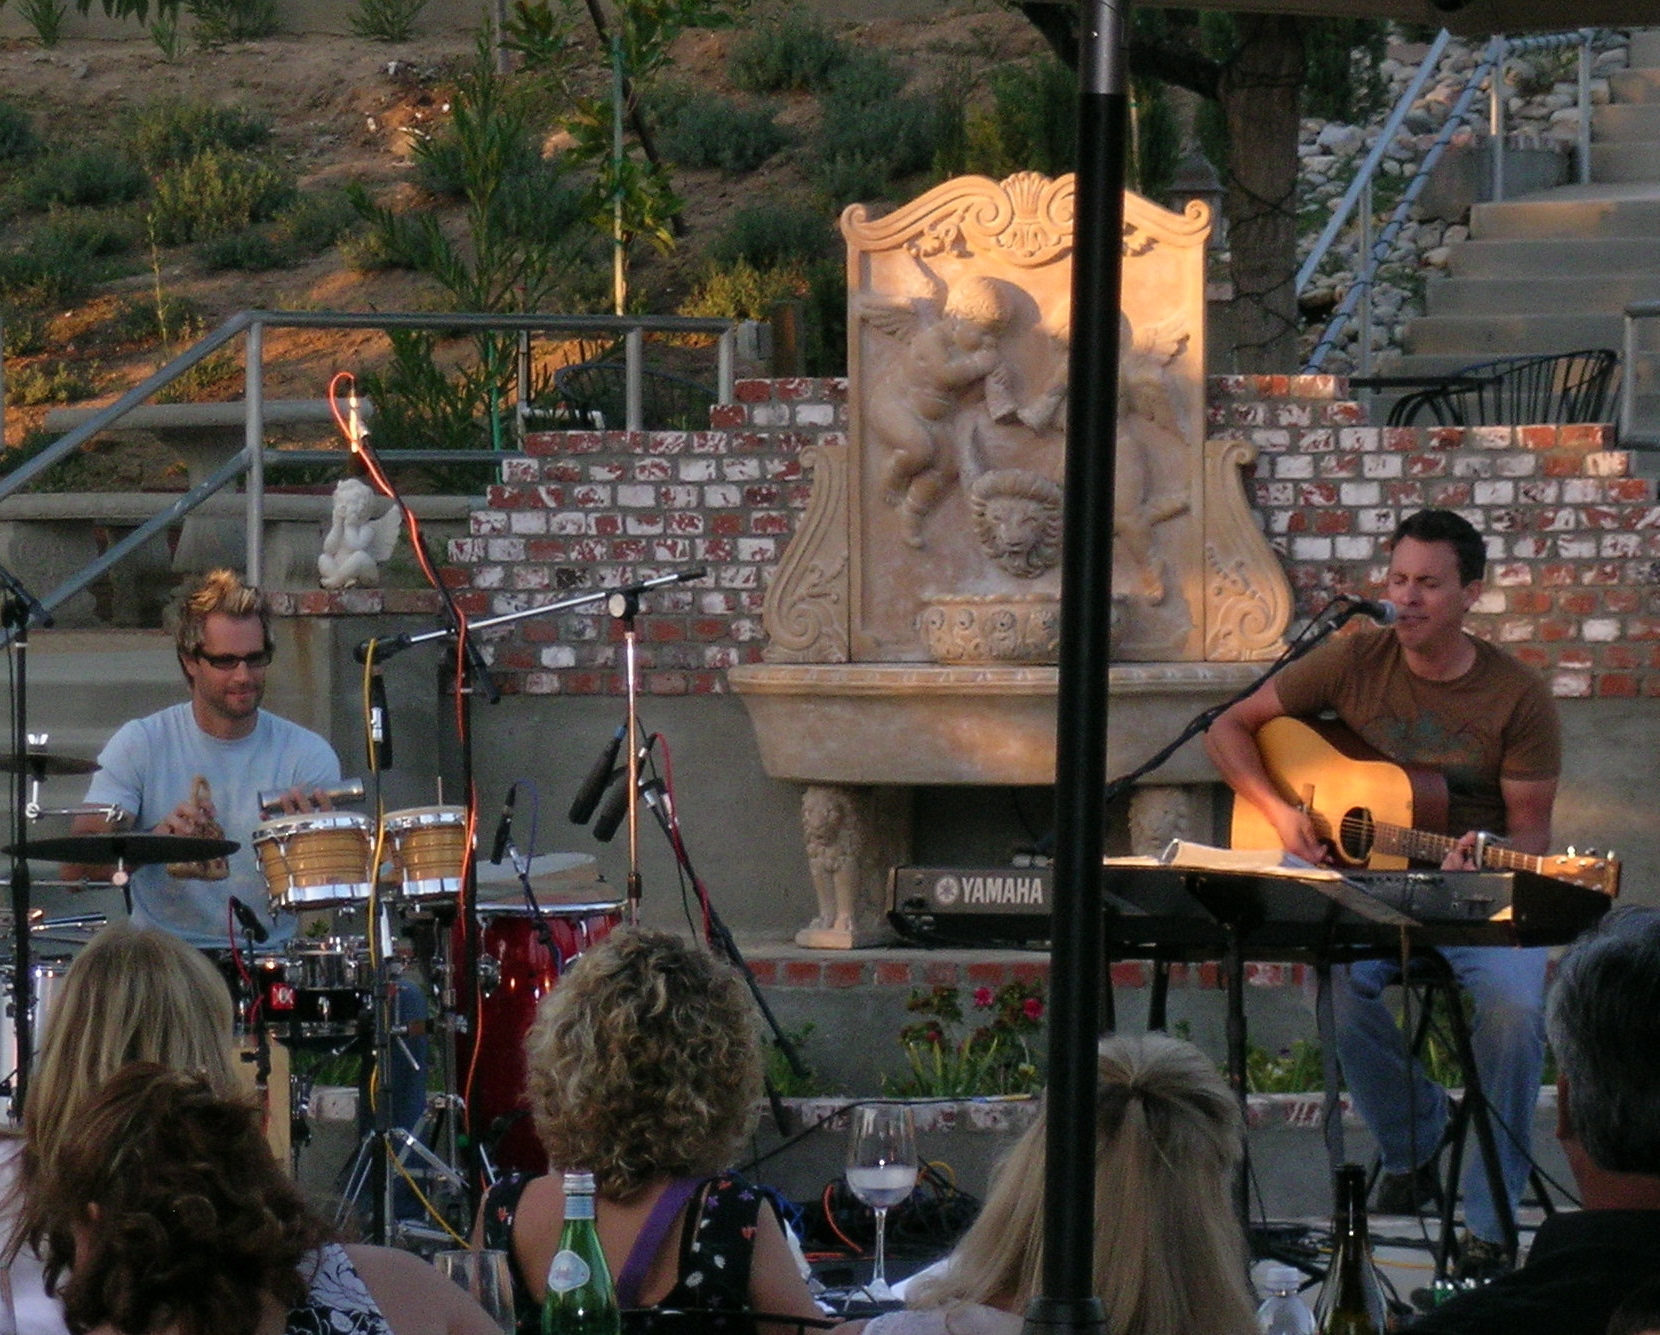 Entertainment, Wedding, Guitar, Dj, Video, Singer, Vocalist, Temecula, Drummer, South coast winery, Live music, Keyboard, Percussion, Percussionist, Private party, Mike brian, Ponte winery, Wilson creek, Mt palomar winery